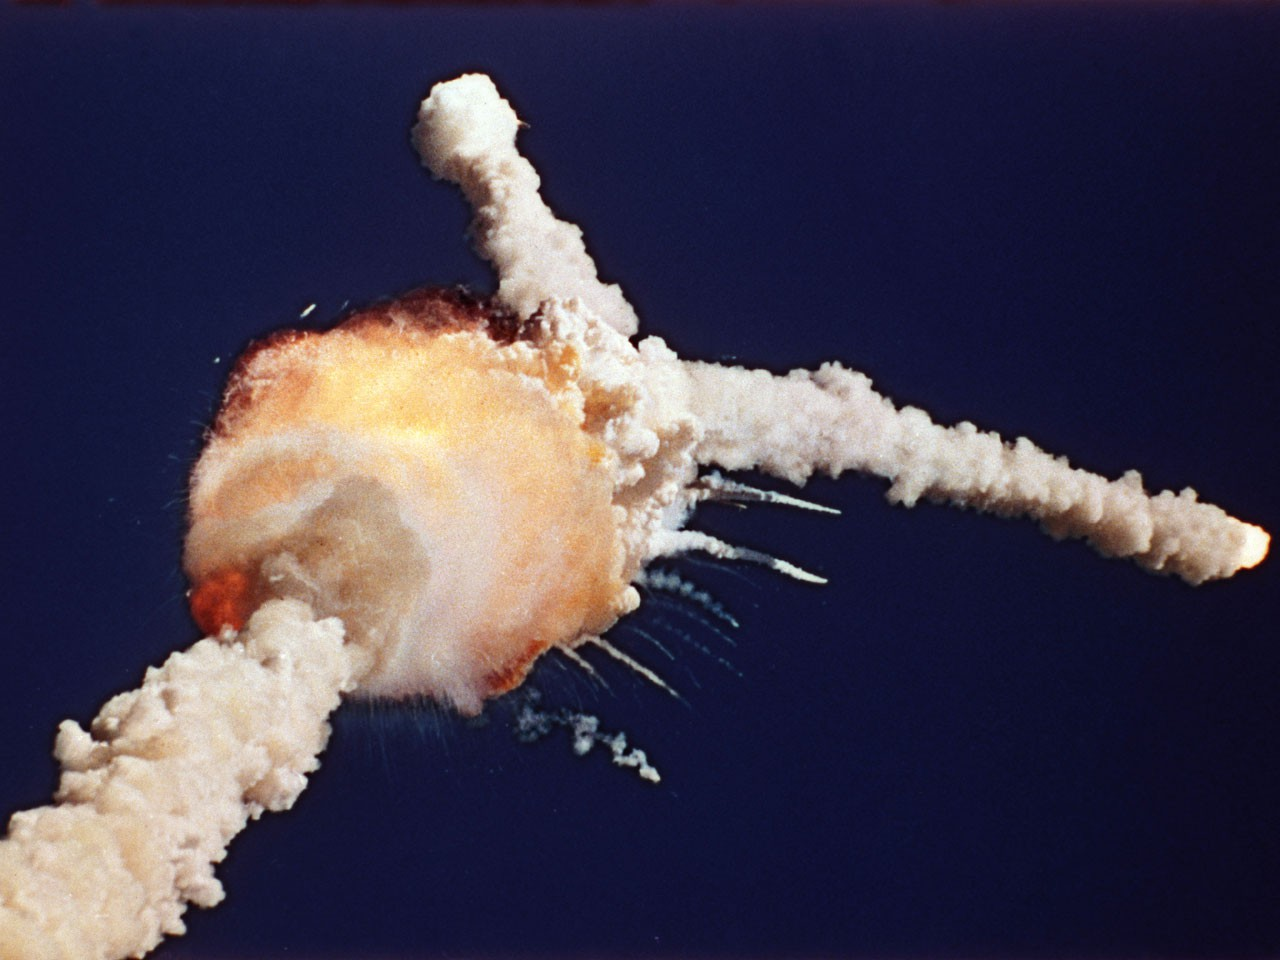 Space Shuttle Challenger, 28 января 1986 года.